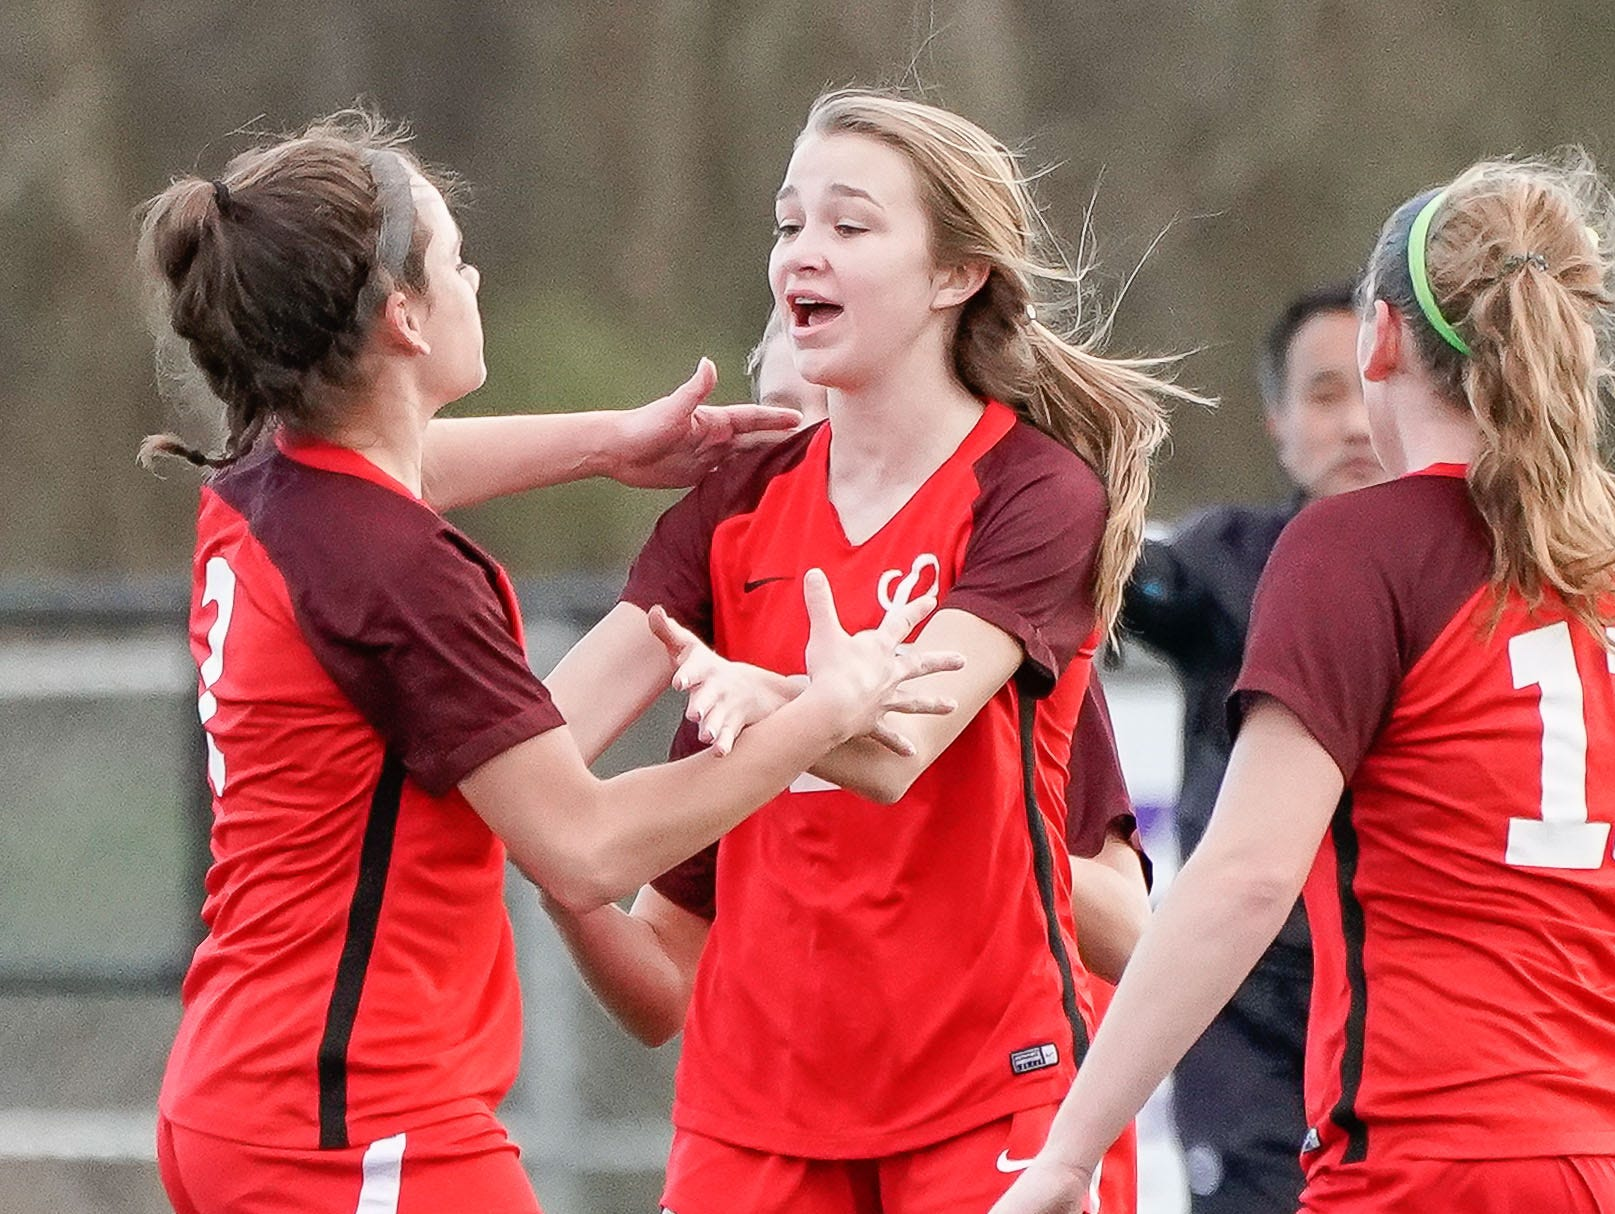 Lafayette girls celebrate a goal against Long Beach during the MHSAA 5A Girls Soccer Championships held at Brandon High School in Brandon, MS, Saturday February 9, 2019.(Bob Smith-For The Clarion Ledger)